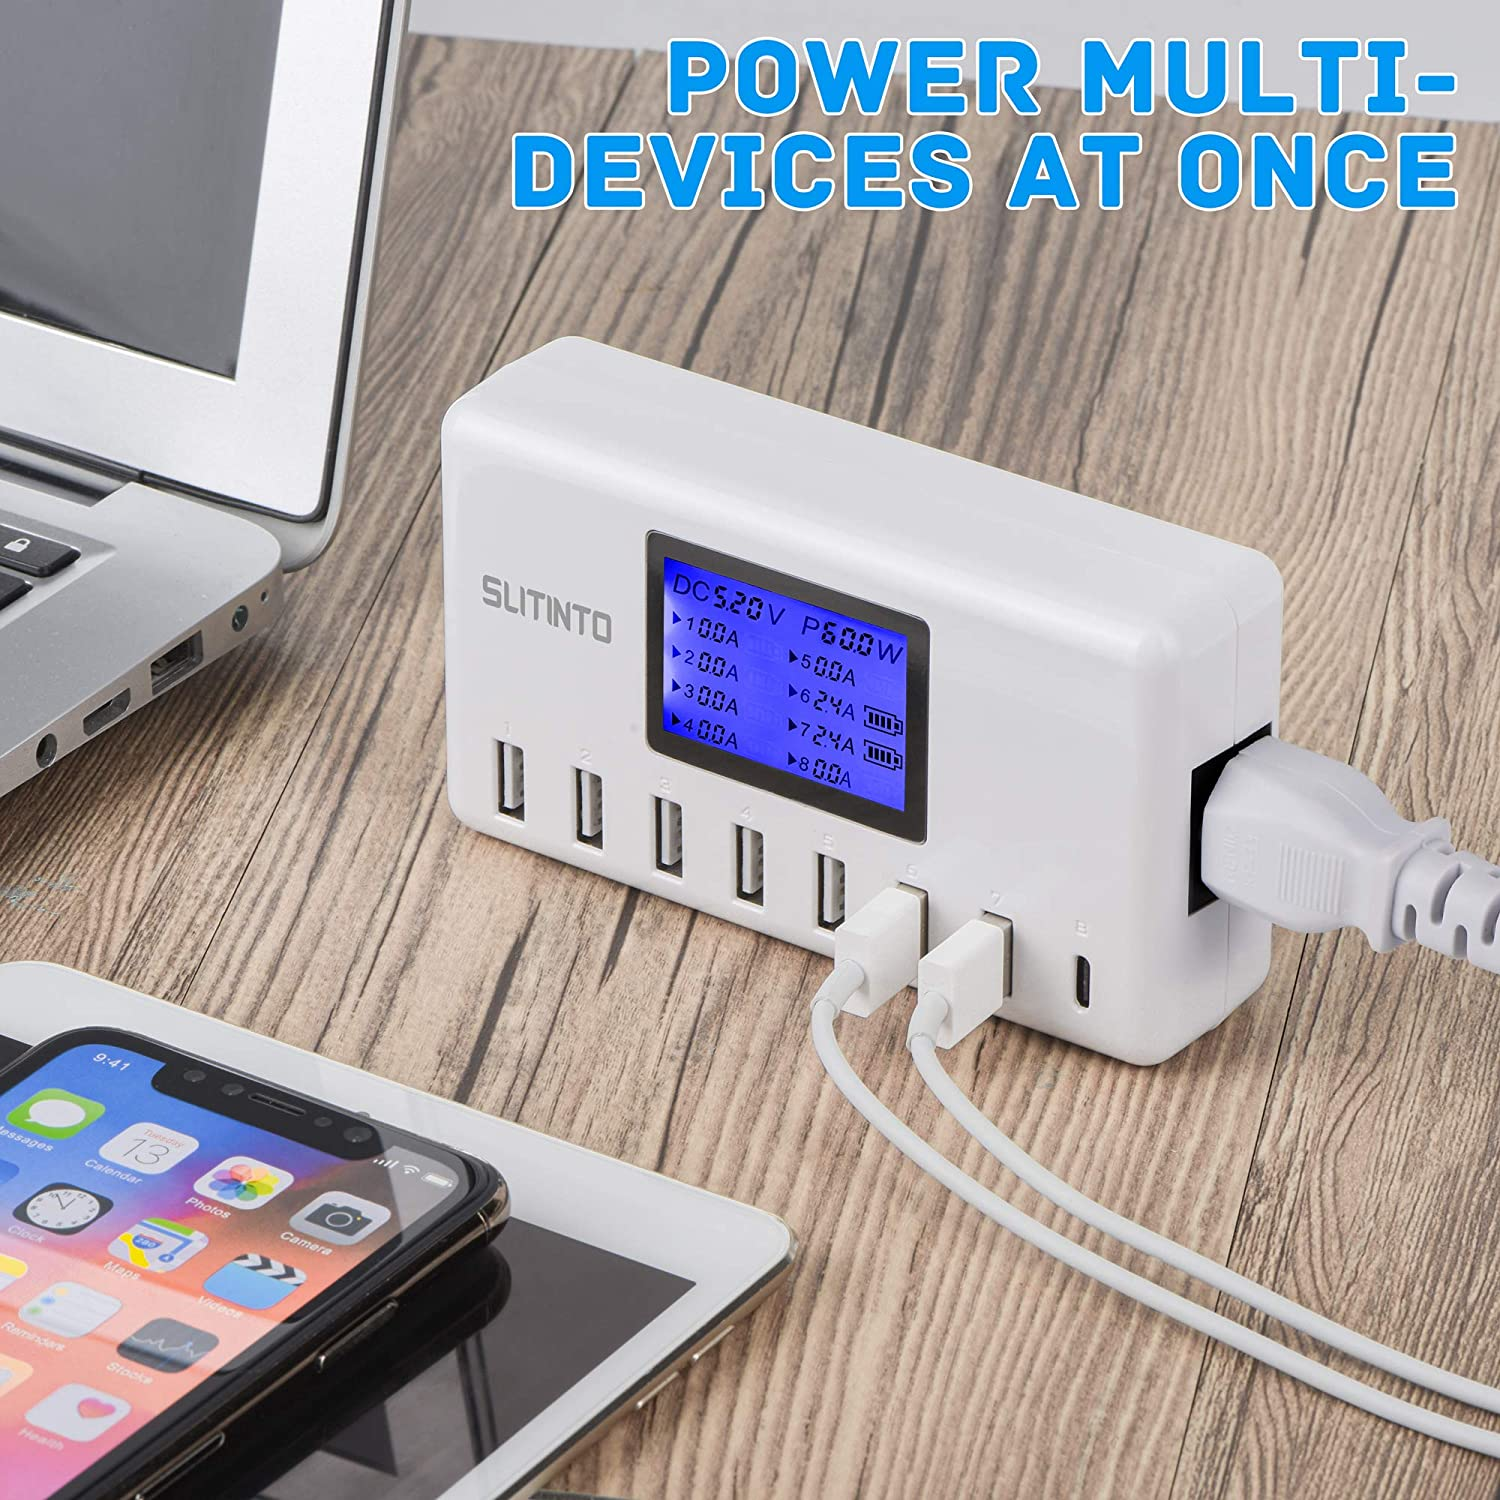 USB Charger, slitinto 60W 12A 8-Port USB Charging Station Multi Port Hub Charger UL Certified Compact Size w/LCD Display Compatible iPhone SE 11 Pro Max iPad Pro Air Mini Galaxy S10+ Tablet and More